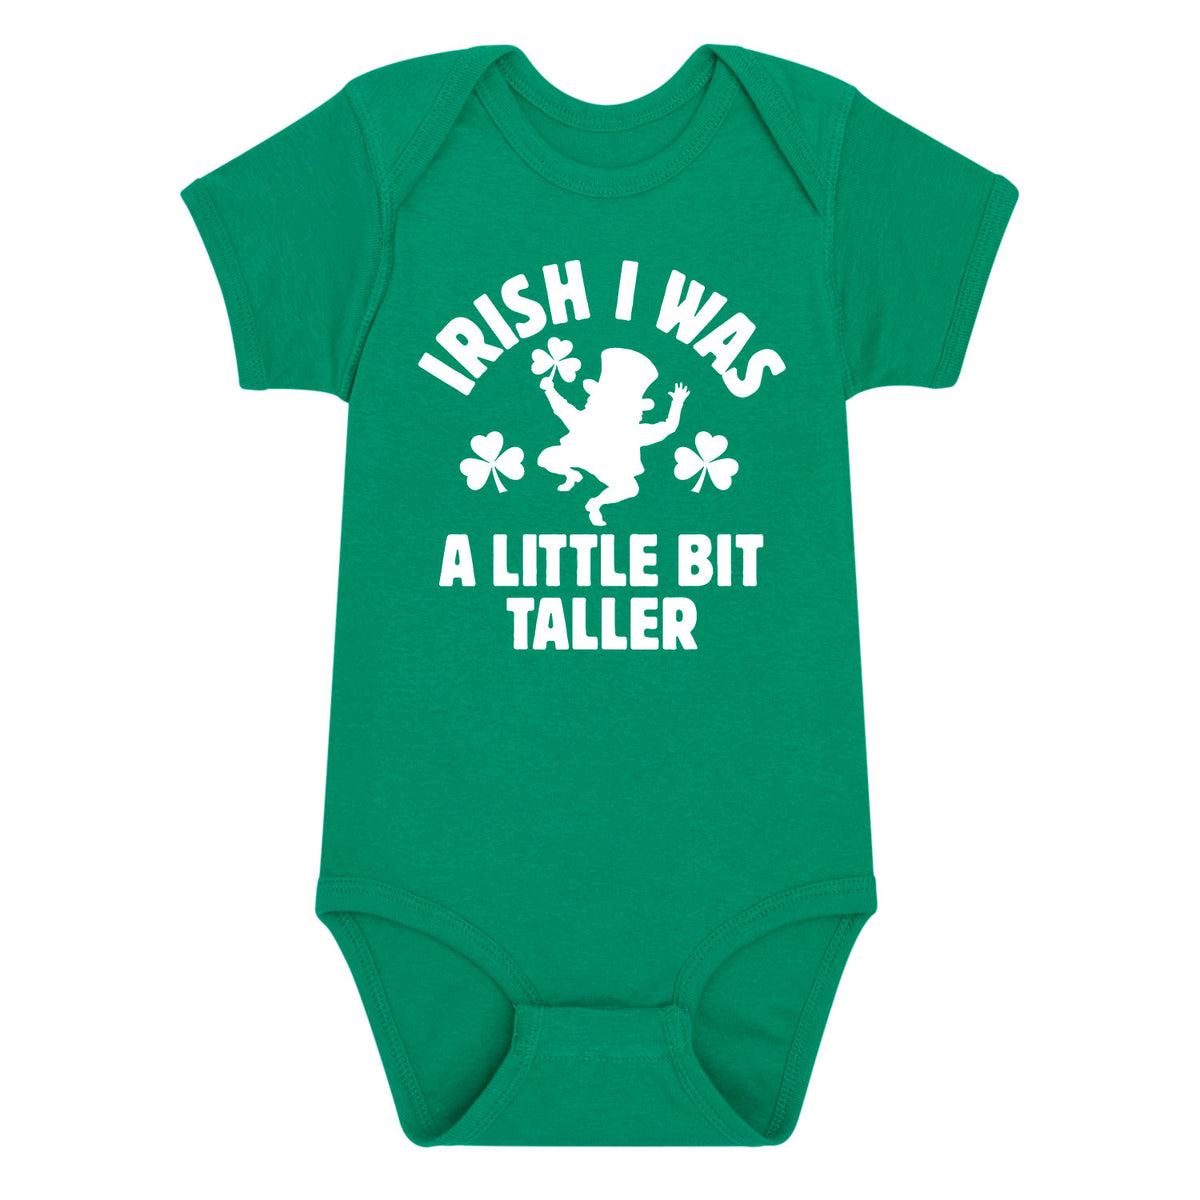 Irish I Was a Little Bit Taller - Infant One Piece